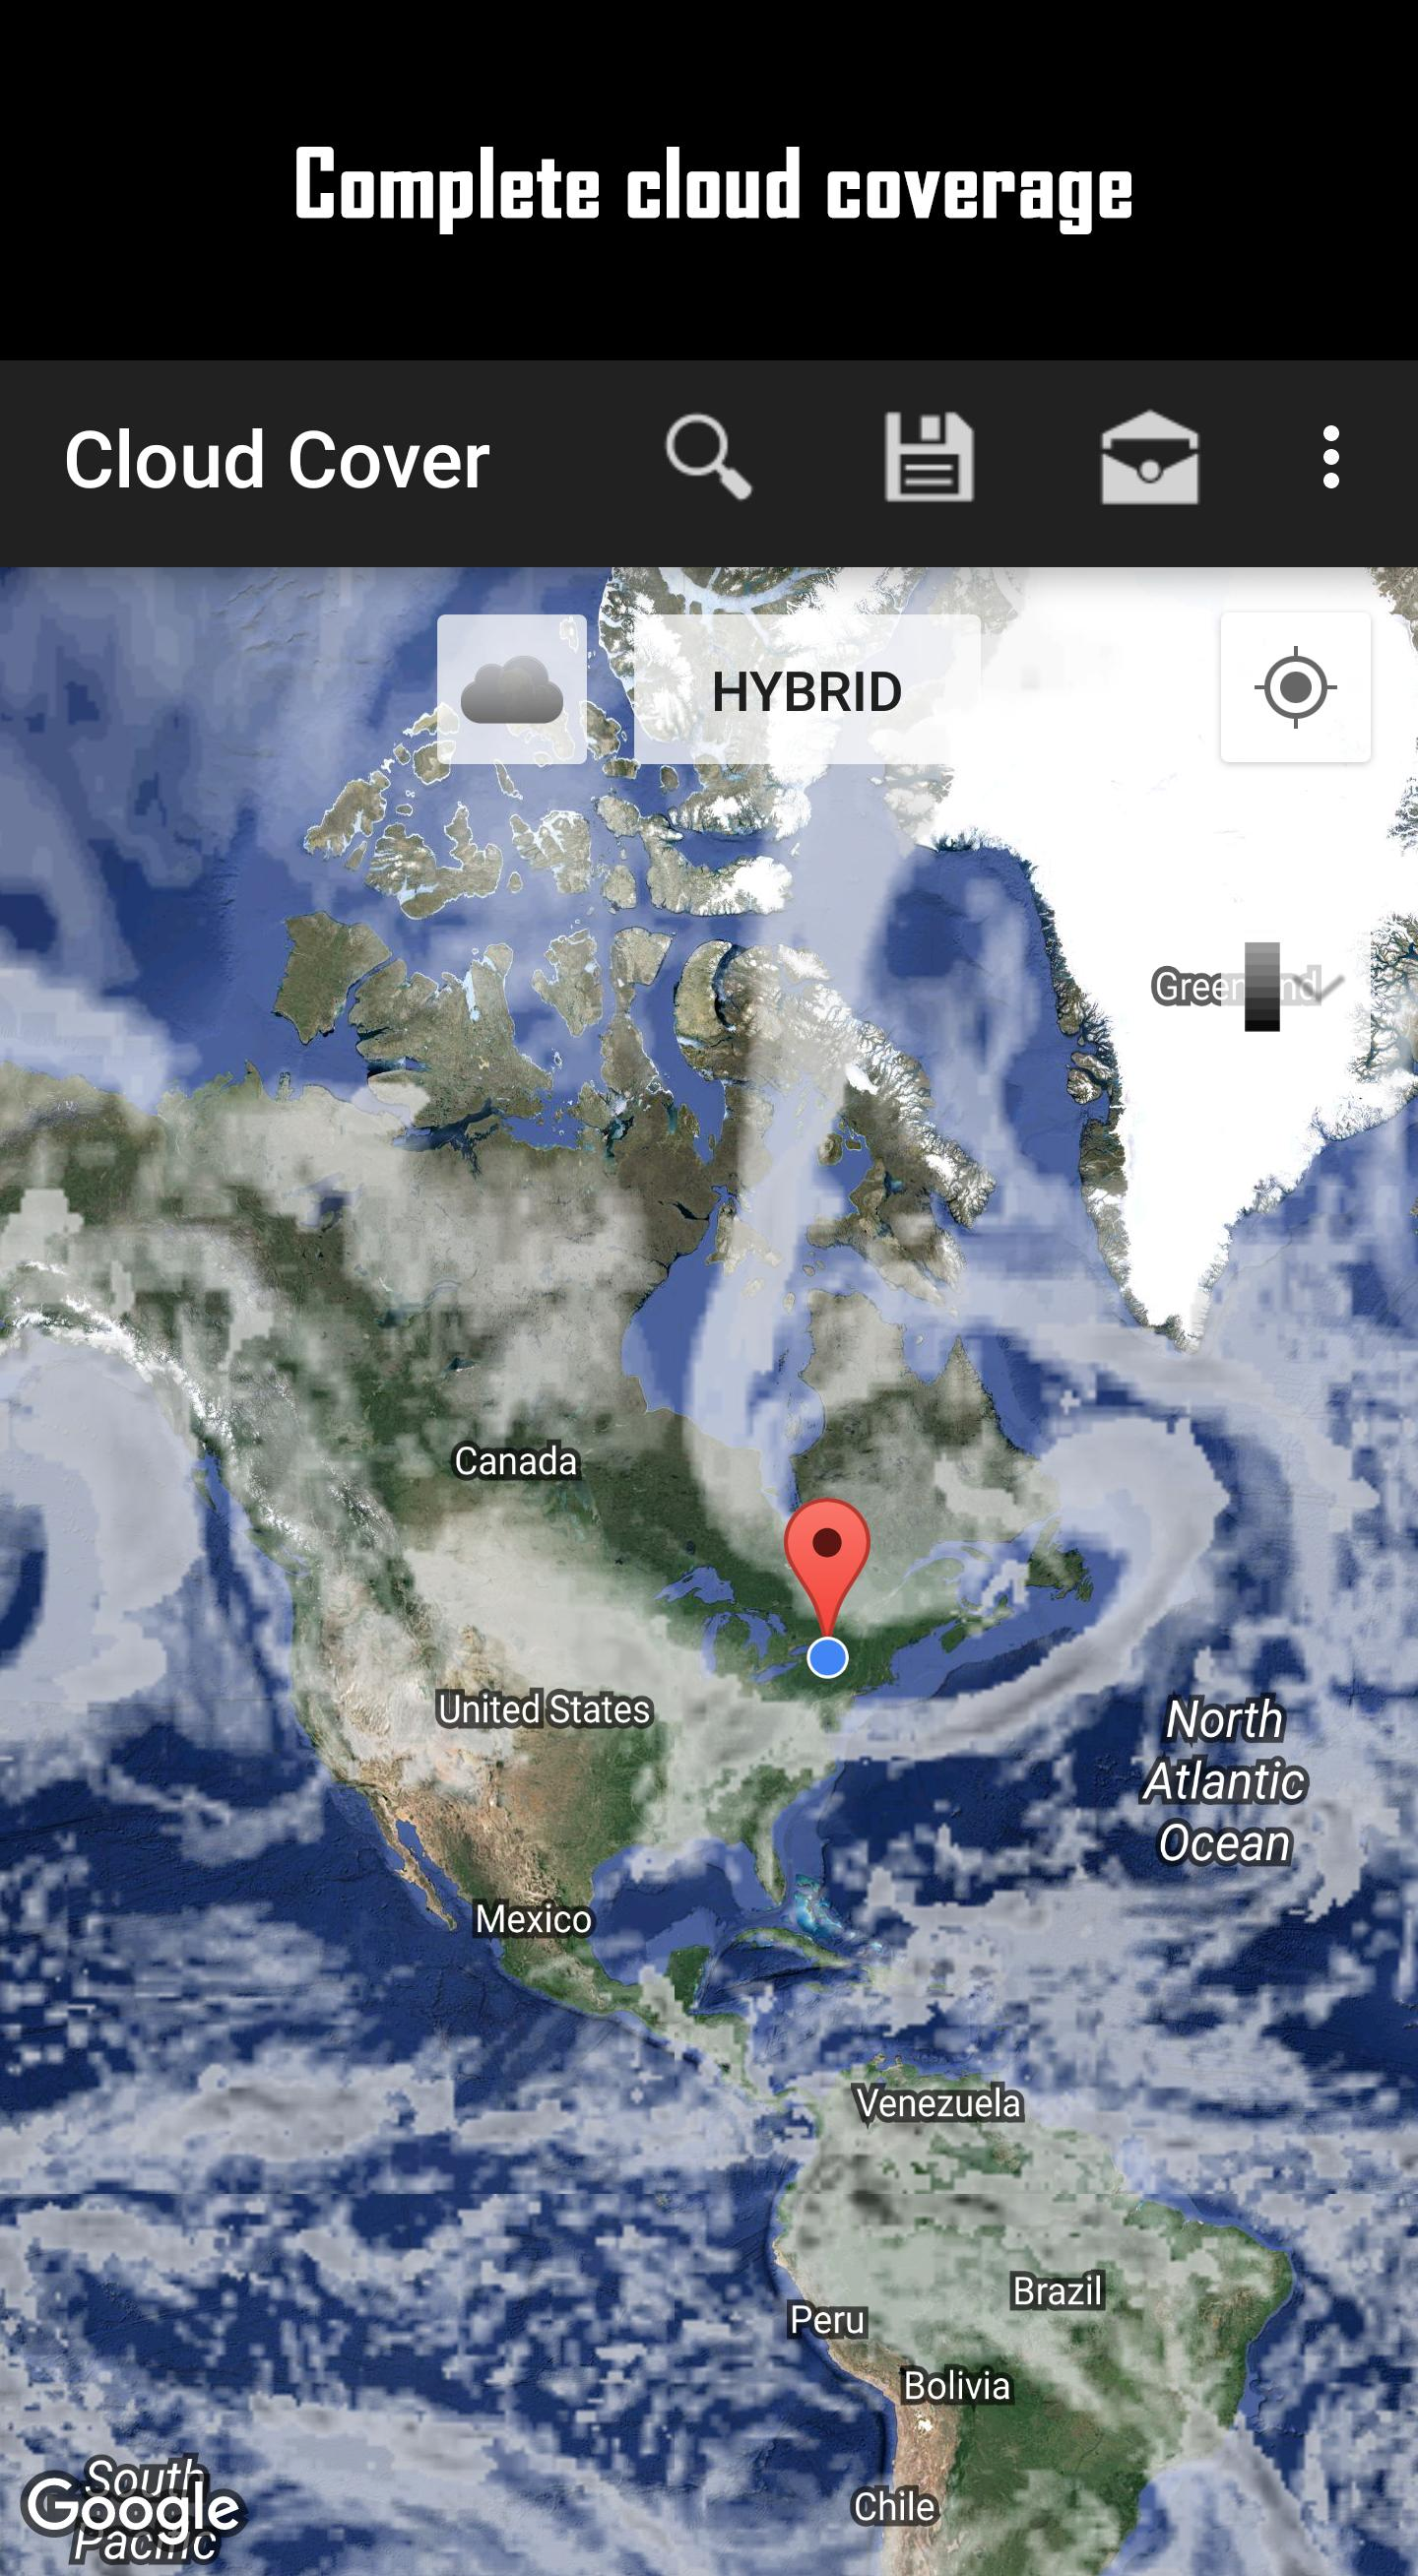 Cloud Cover Map Canada Cloud Cover Map for Android   APK Download